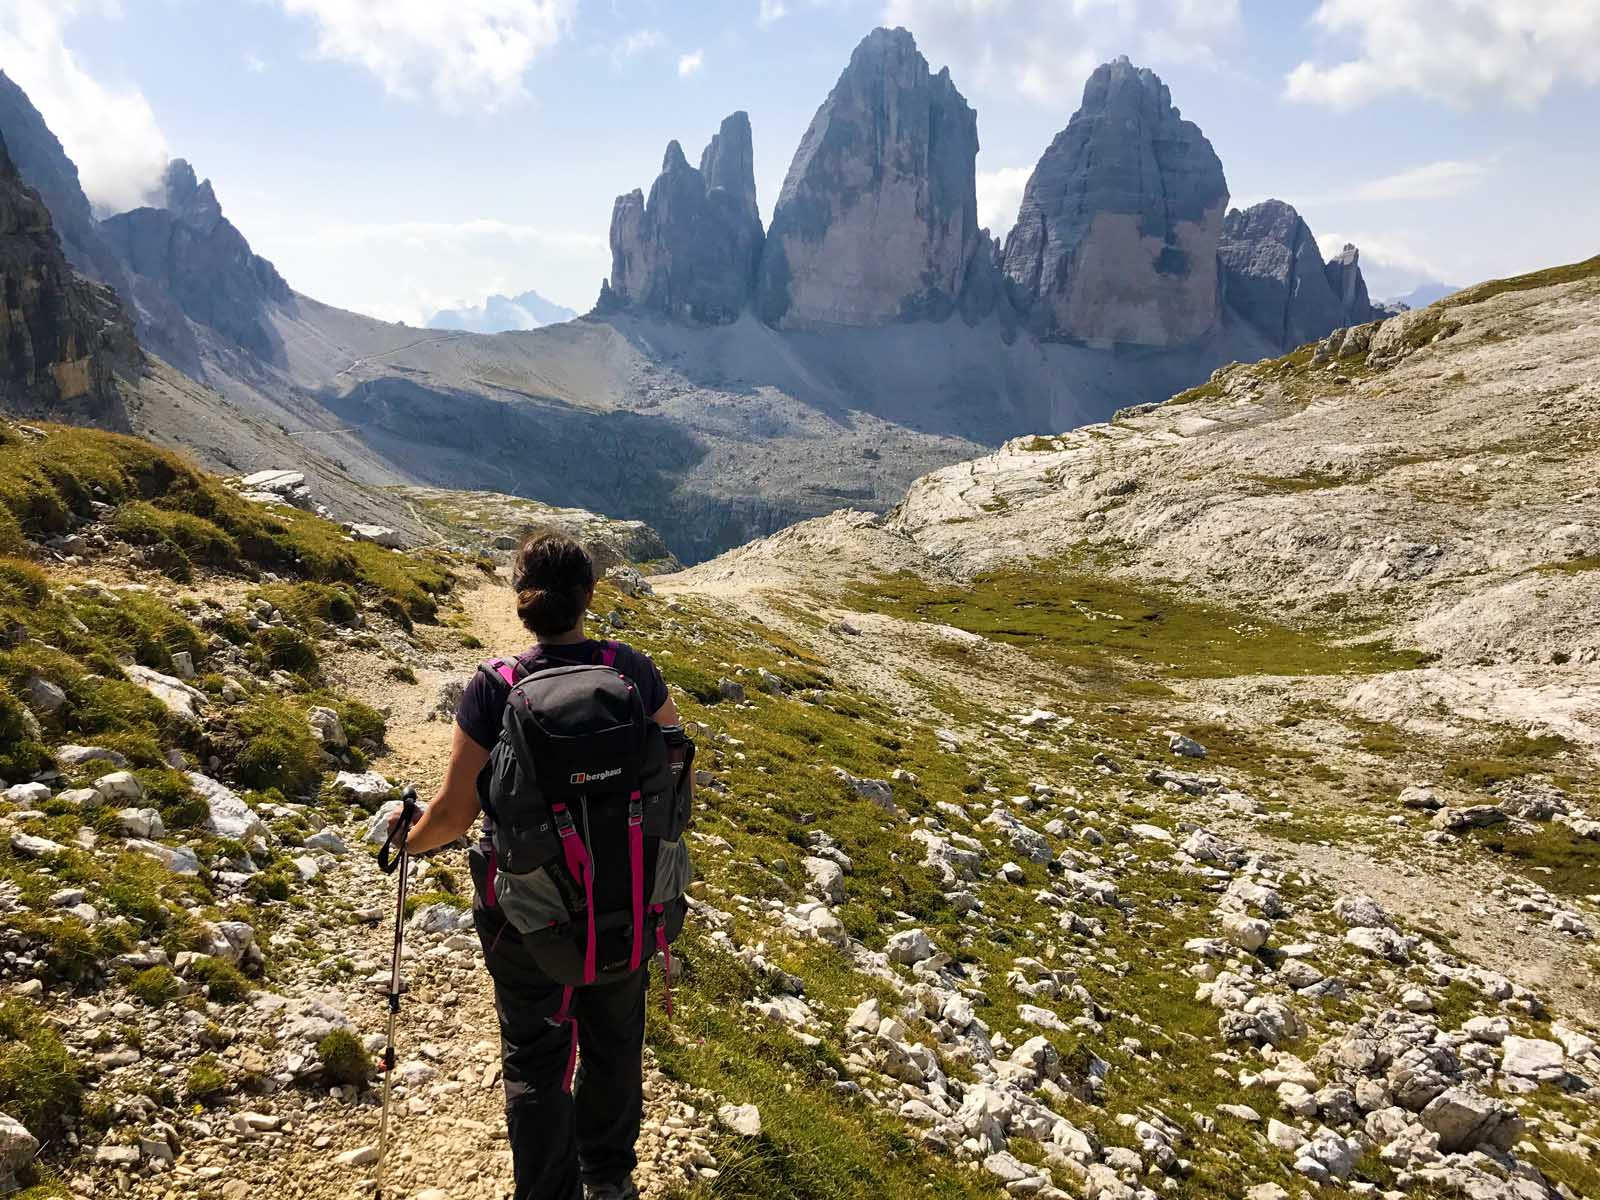 Hike the Dolomites in North-Eastern Italy